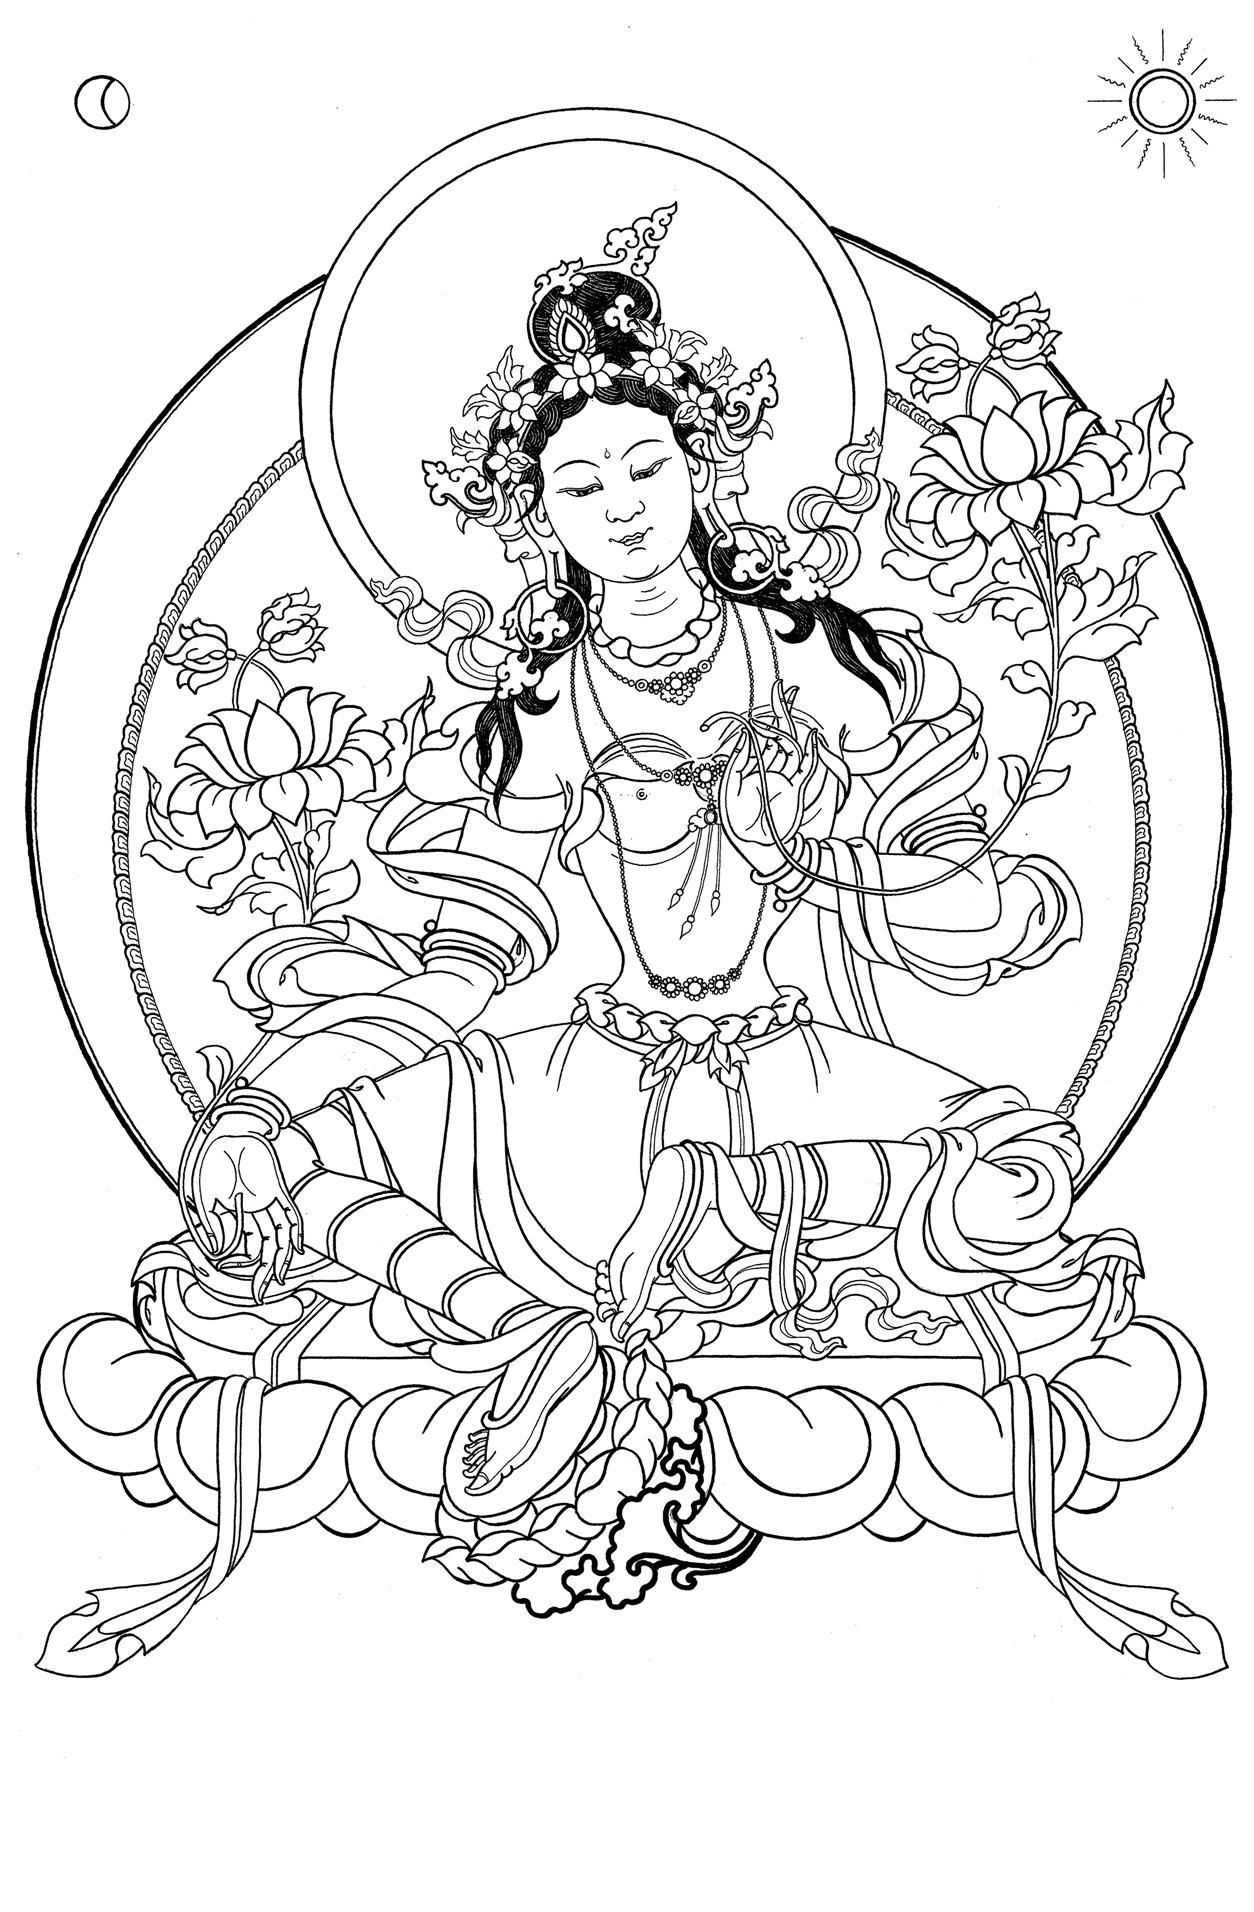 hindu colouring pages hindu coloring pages coloring home pages hindu colouring